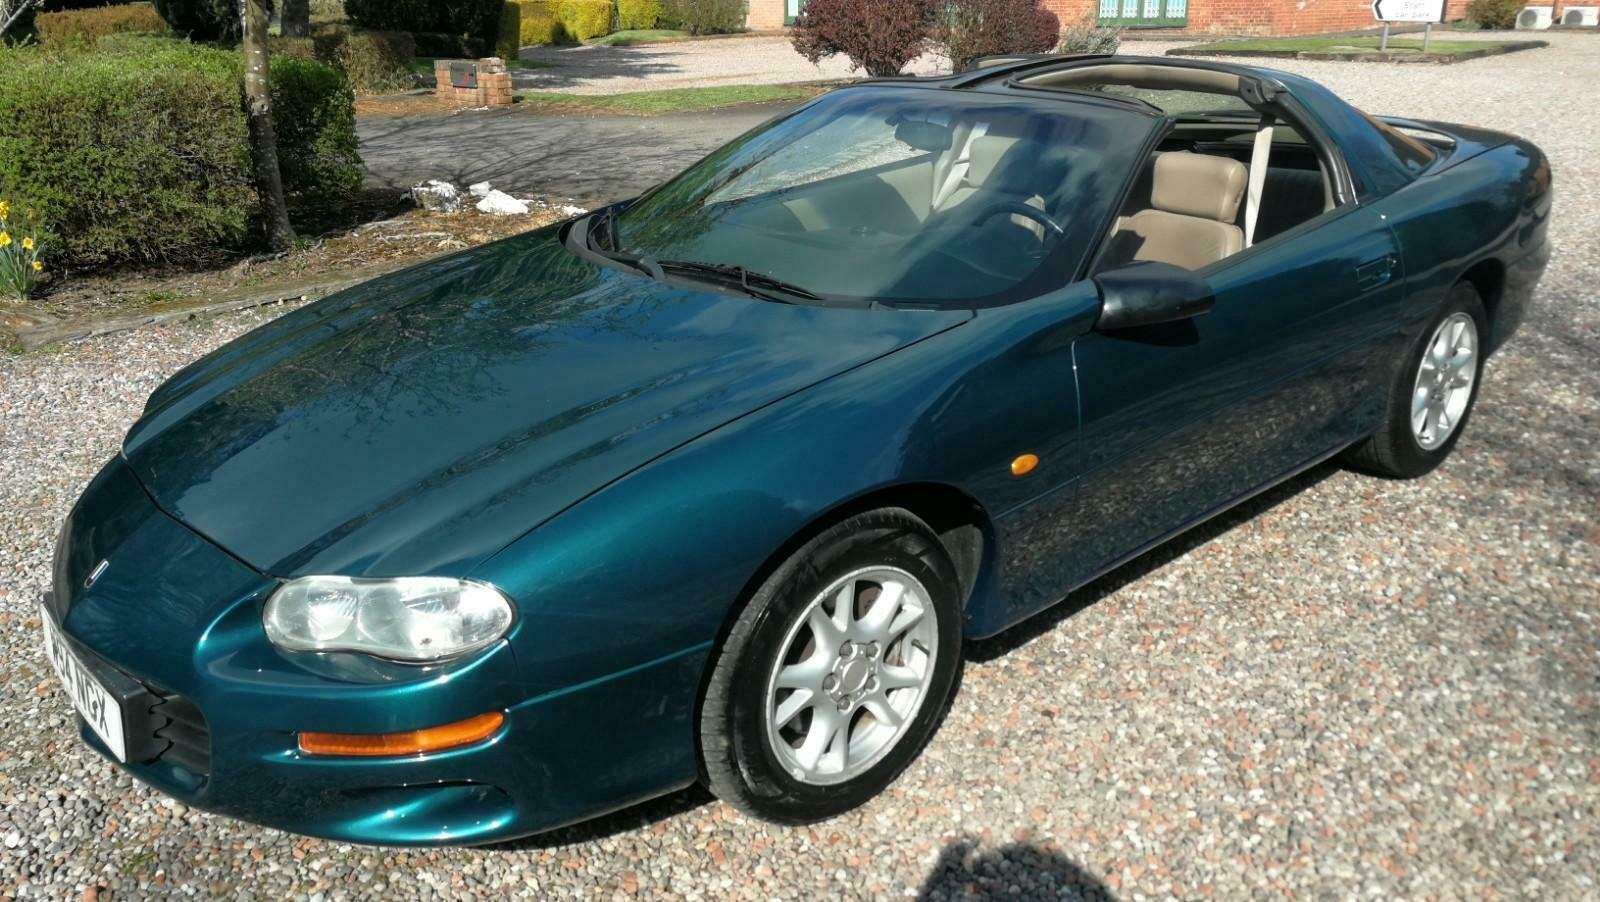 2000 Cheverolt Camero 3.8Auto T bar 83k FSH UK car since NEW SOLD (picture 2 of 4)